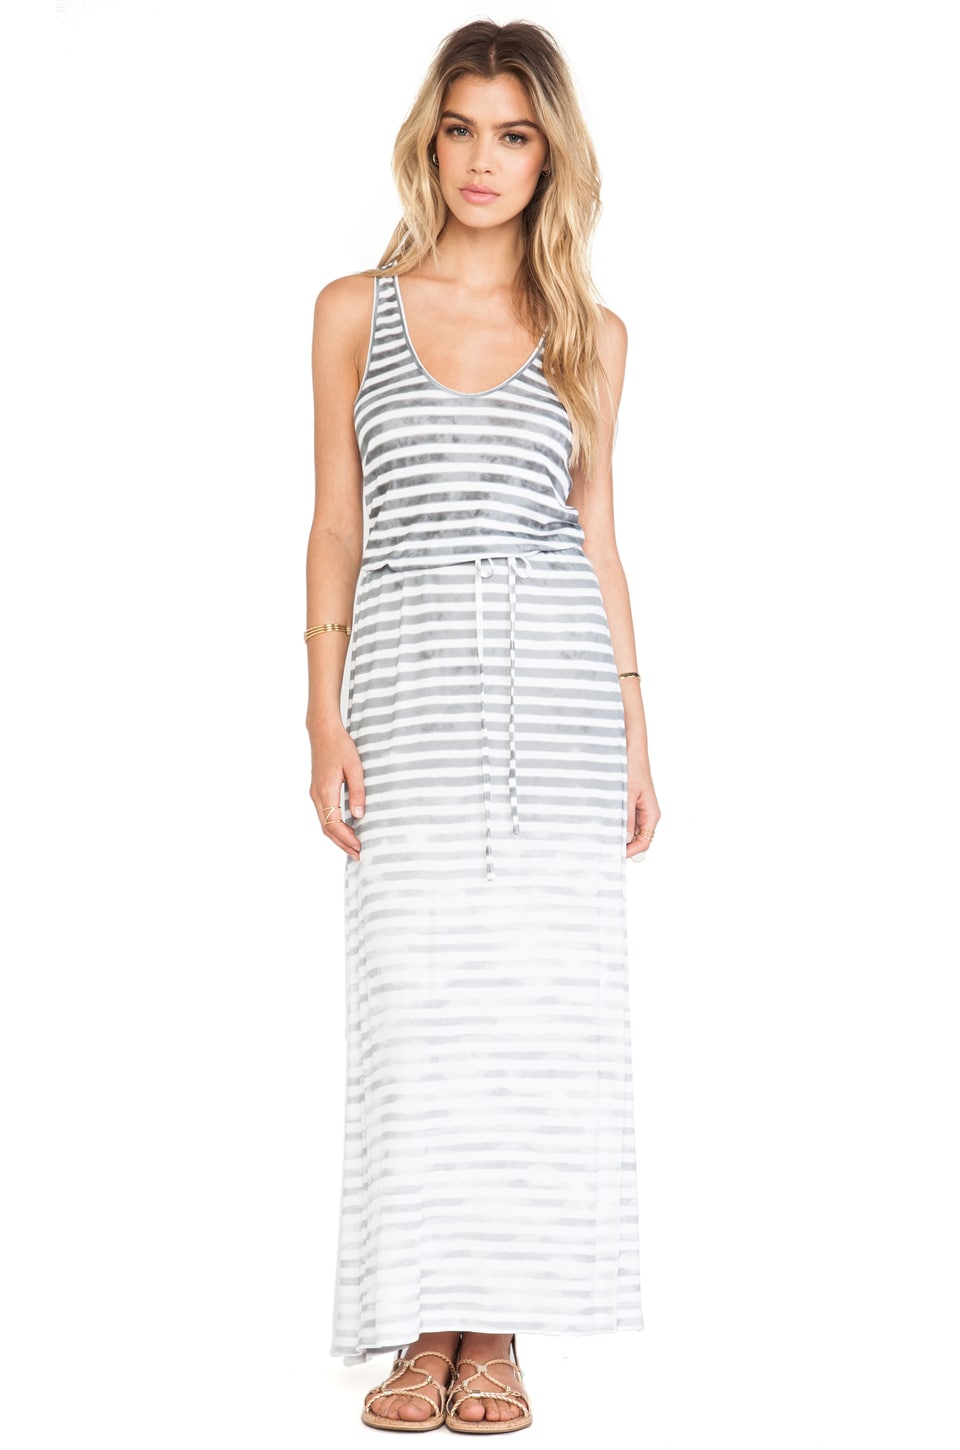 Soft Joie Emilia Maxi Dress in Ash Grey & Antique White